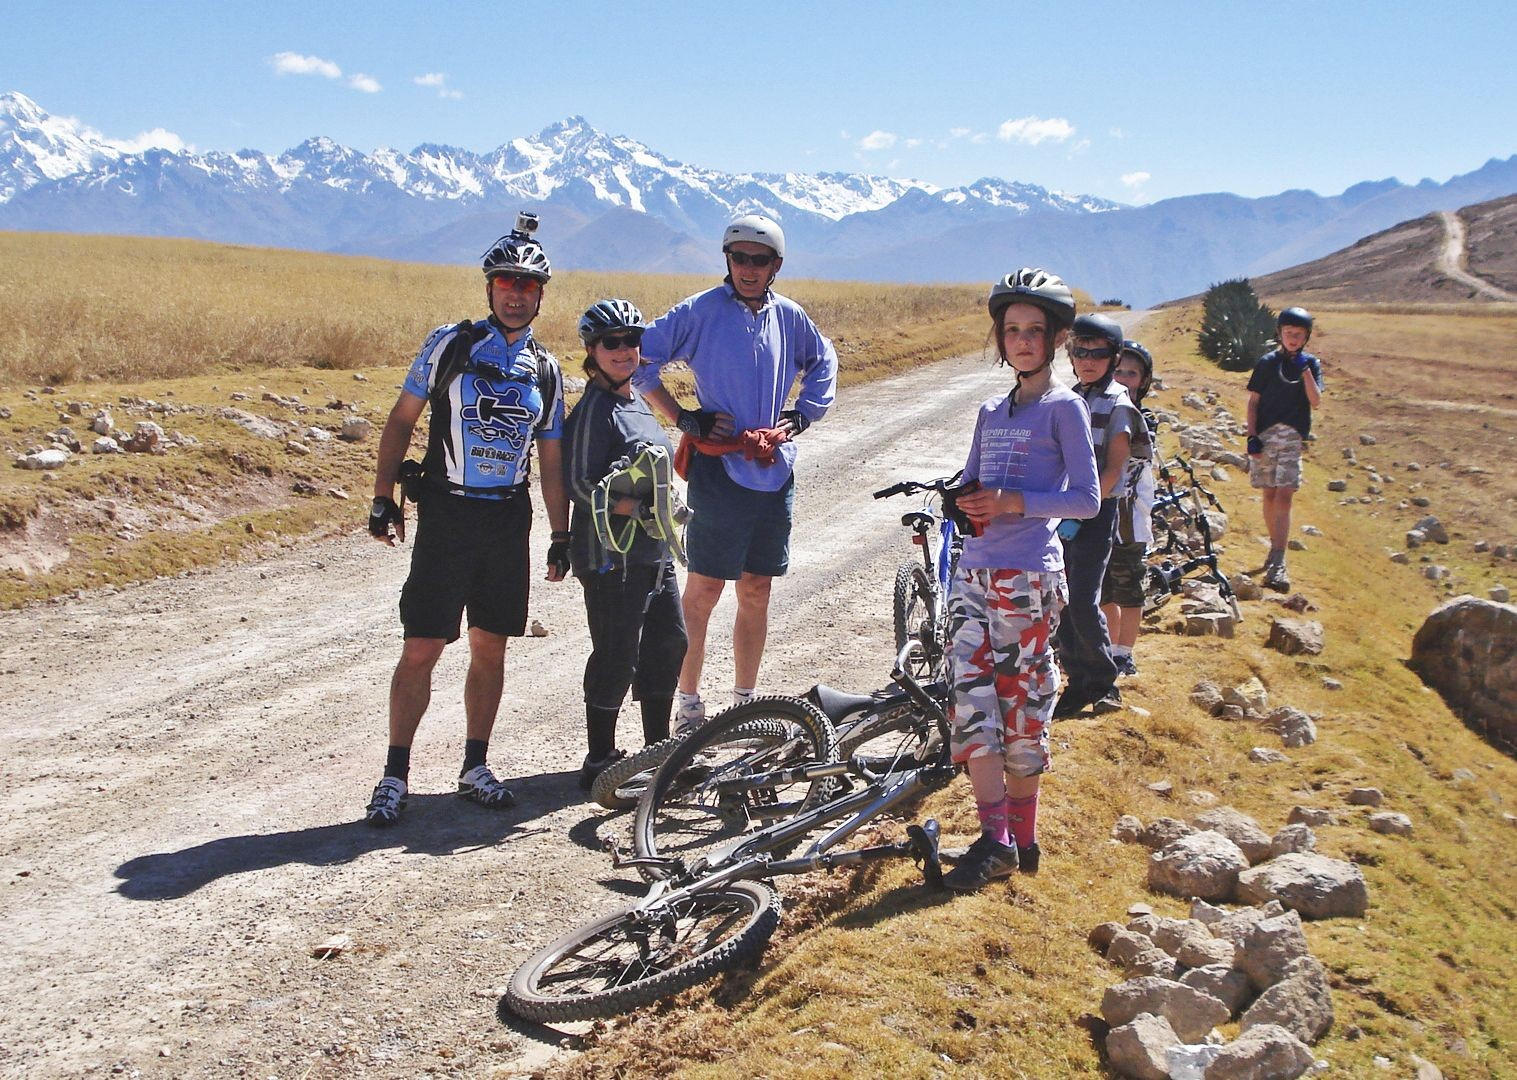 andean-adventurer-peru-guided-family-cycling-holiday-machu-picchu.JPG - Peru - Andean Adventure - Guided Family Cycling Holiday - Family Cycling